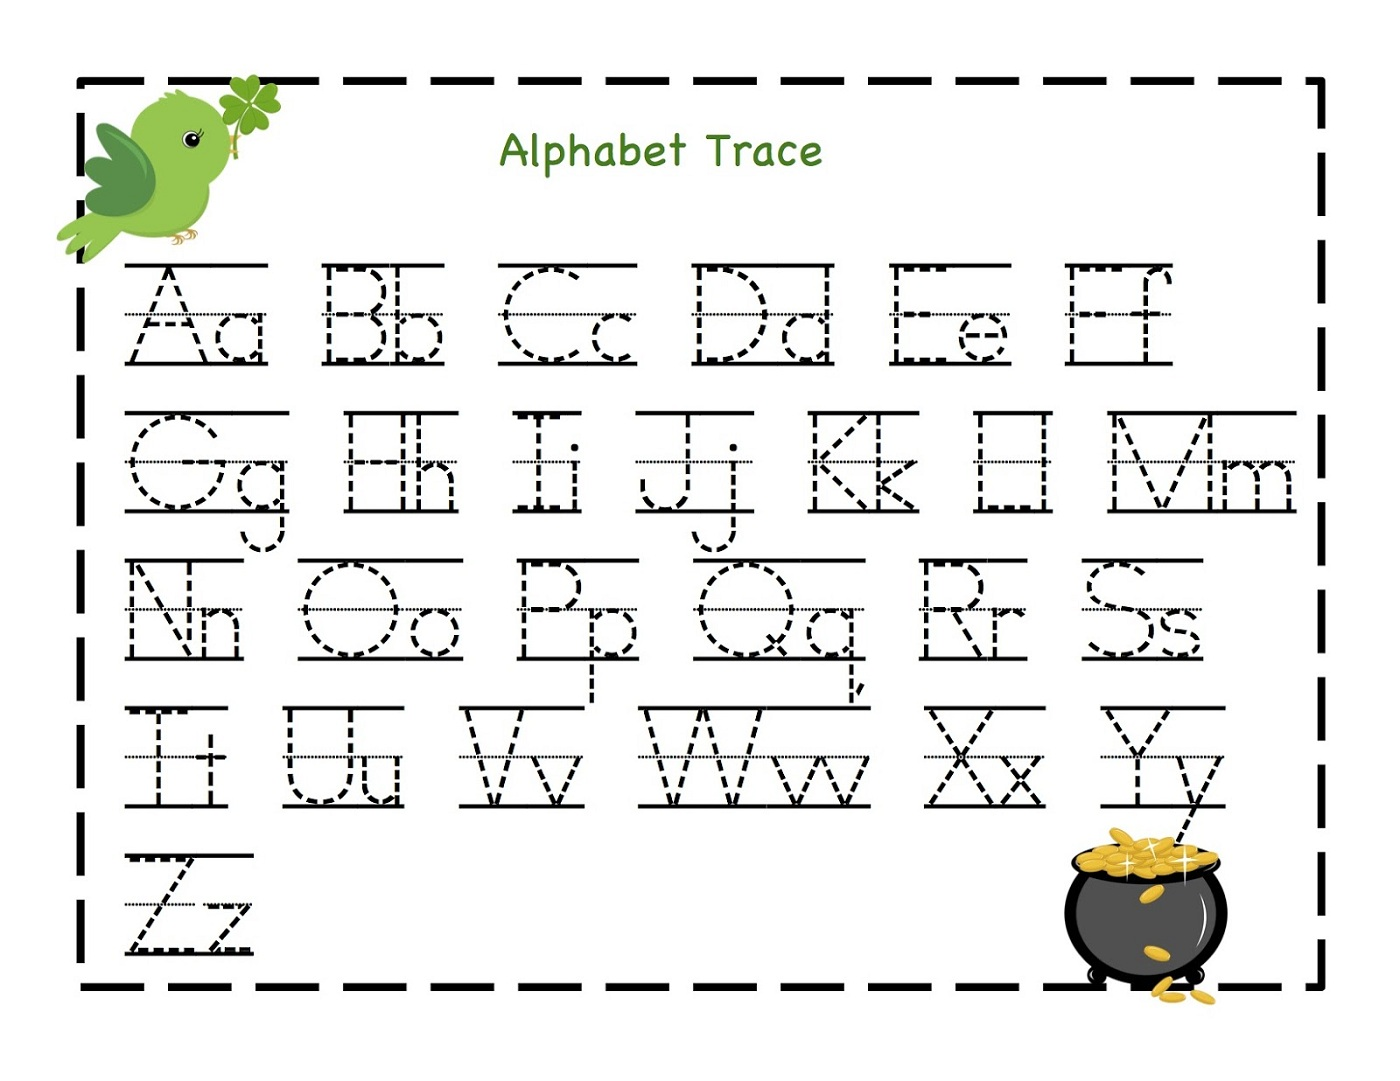 Worksheet Kindergarten Printable Activities kindergarten activities printable worksheets scalien worksheet fun a z alphabet printable